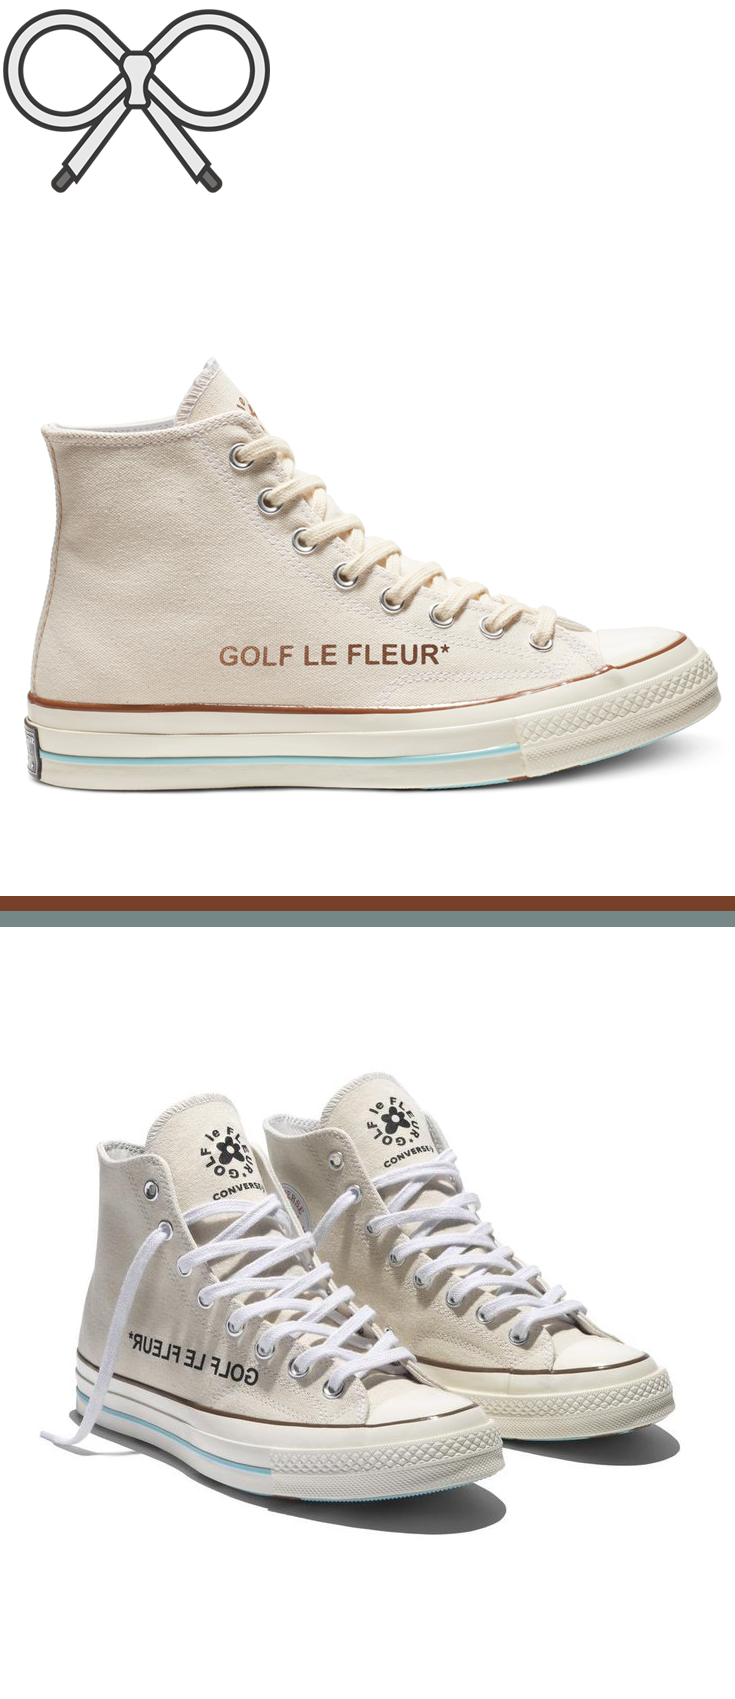 Pin on Converse | Men & Women's Shoes, Sneakers, and Footwear